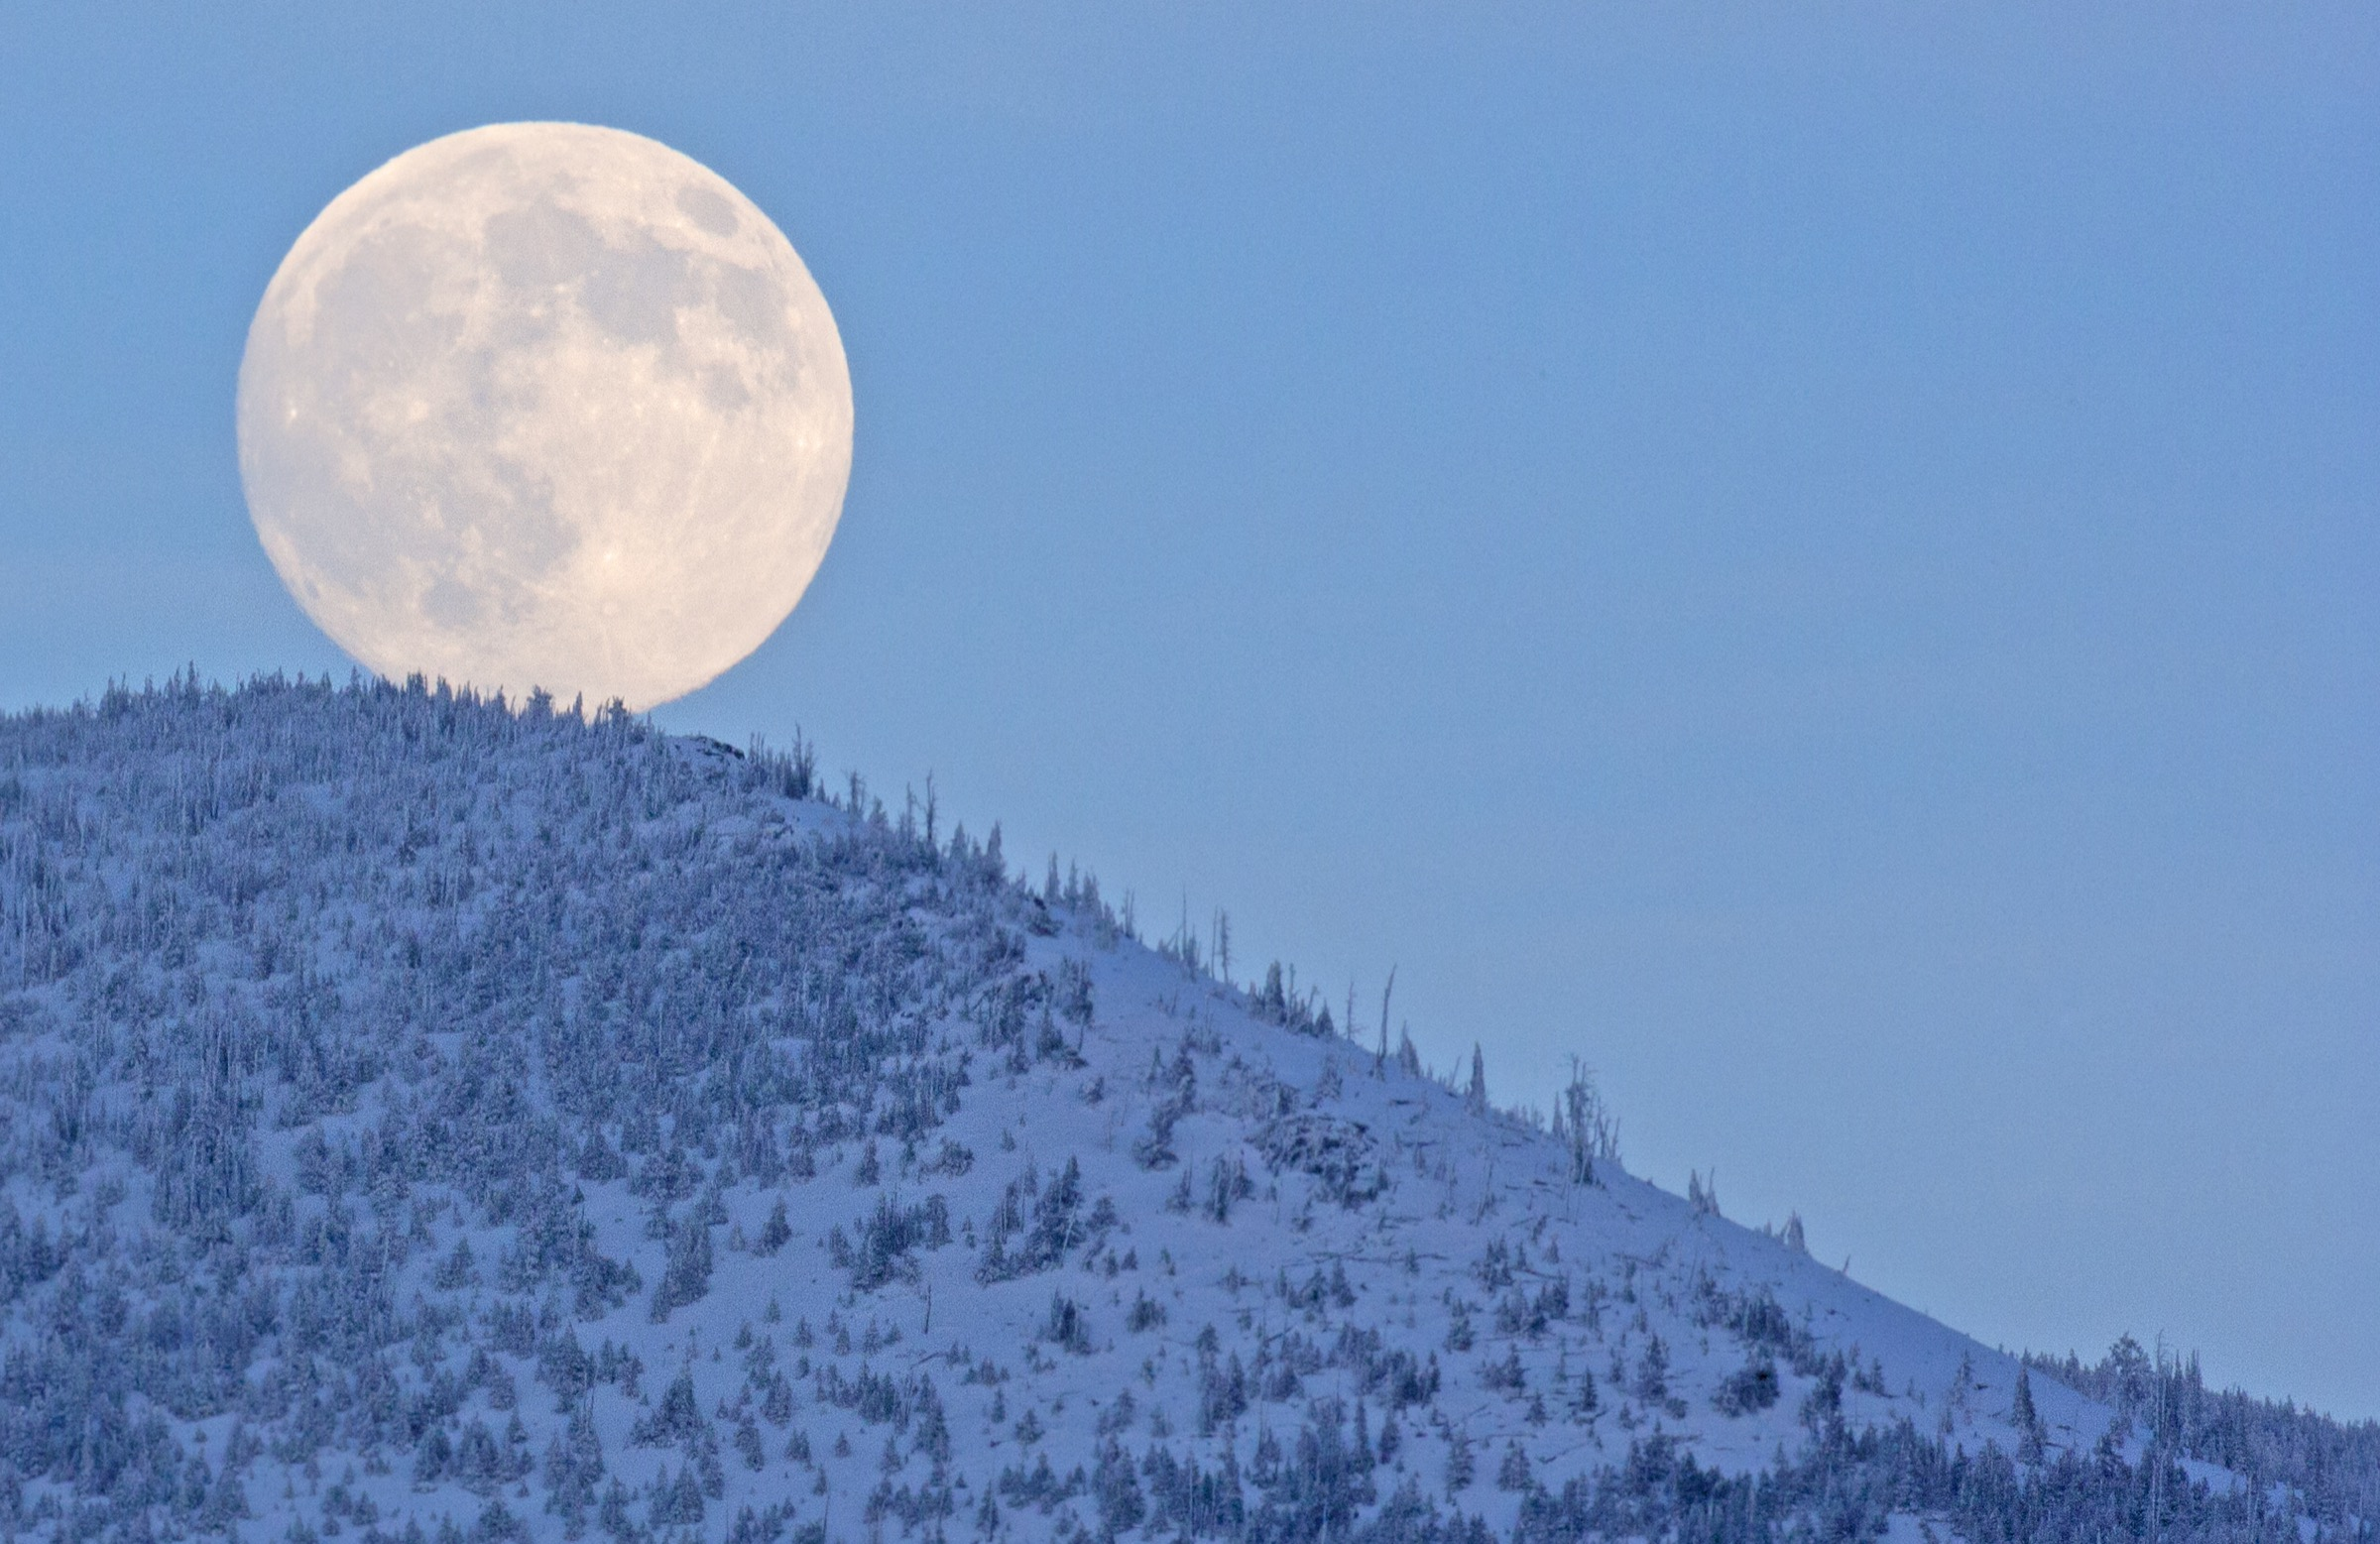 Moon rises over the research site in Montana's Bob Marshall Wilderness Area. Late winter marks the onset of mating season in this strictly nocturnal flying rodent.